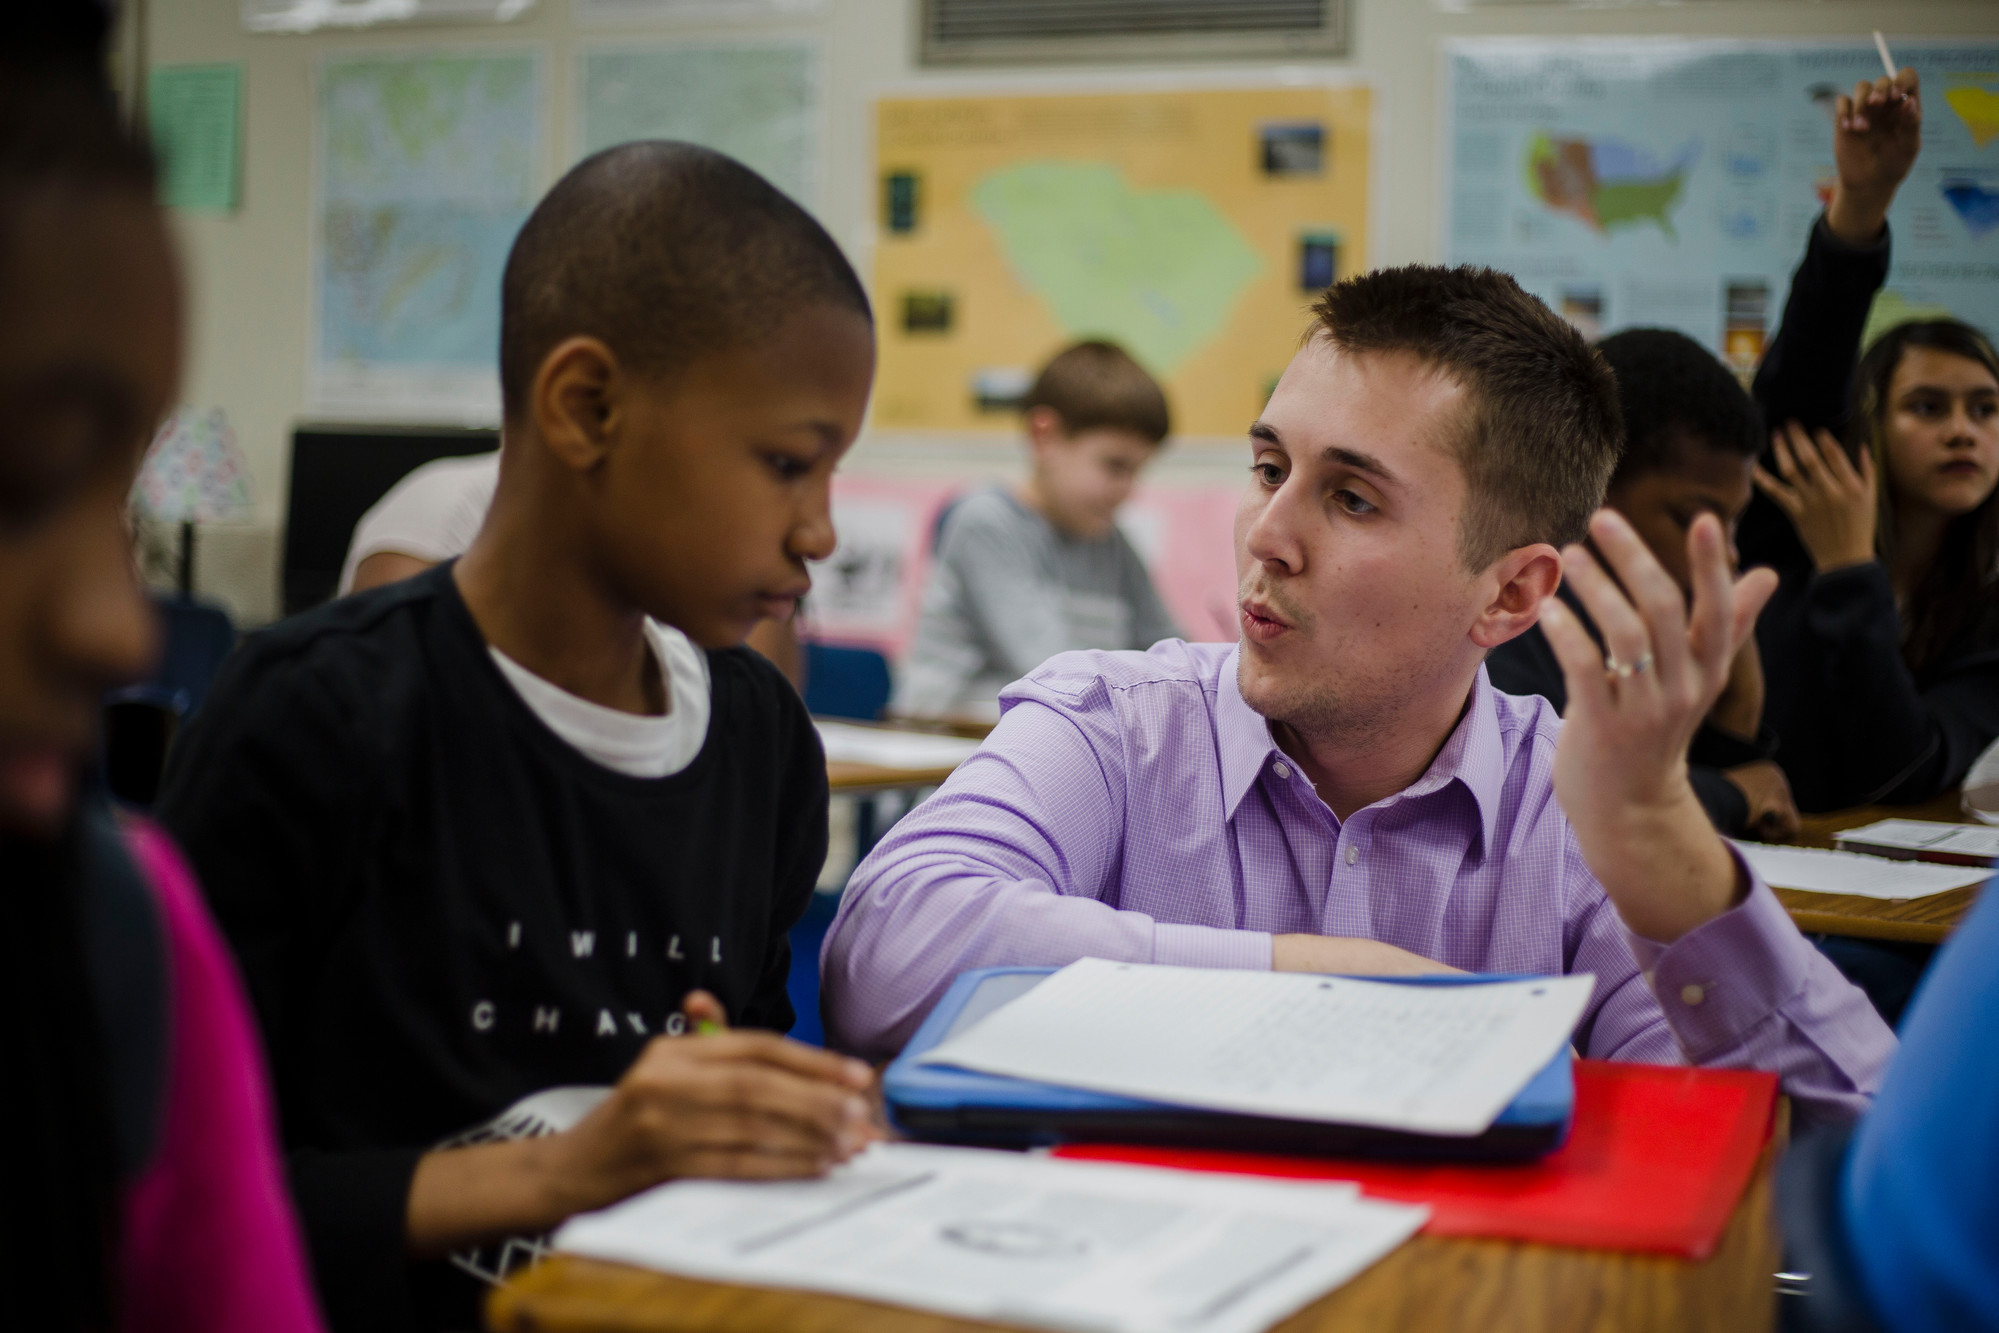 Zachariah Lowe helps a student in his classroom at Mayewood Middle School on Tuesday.